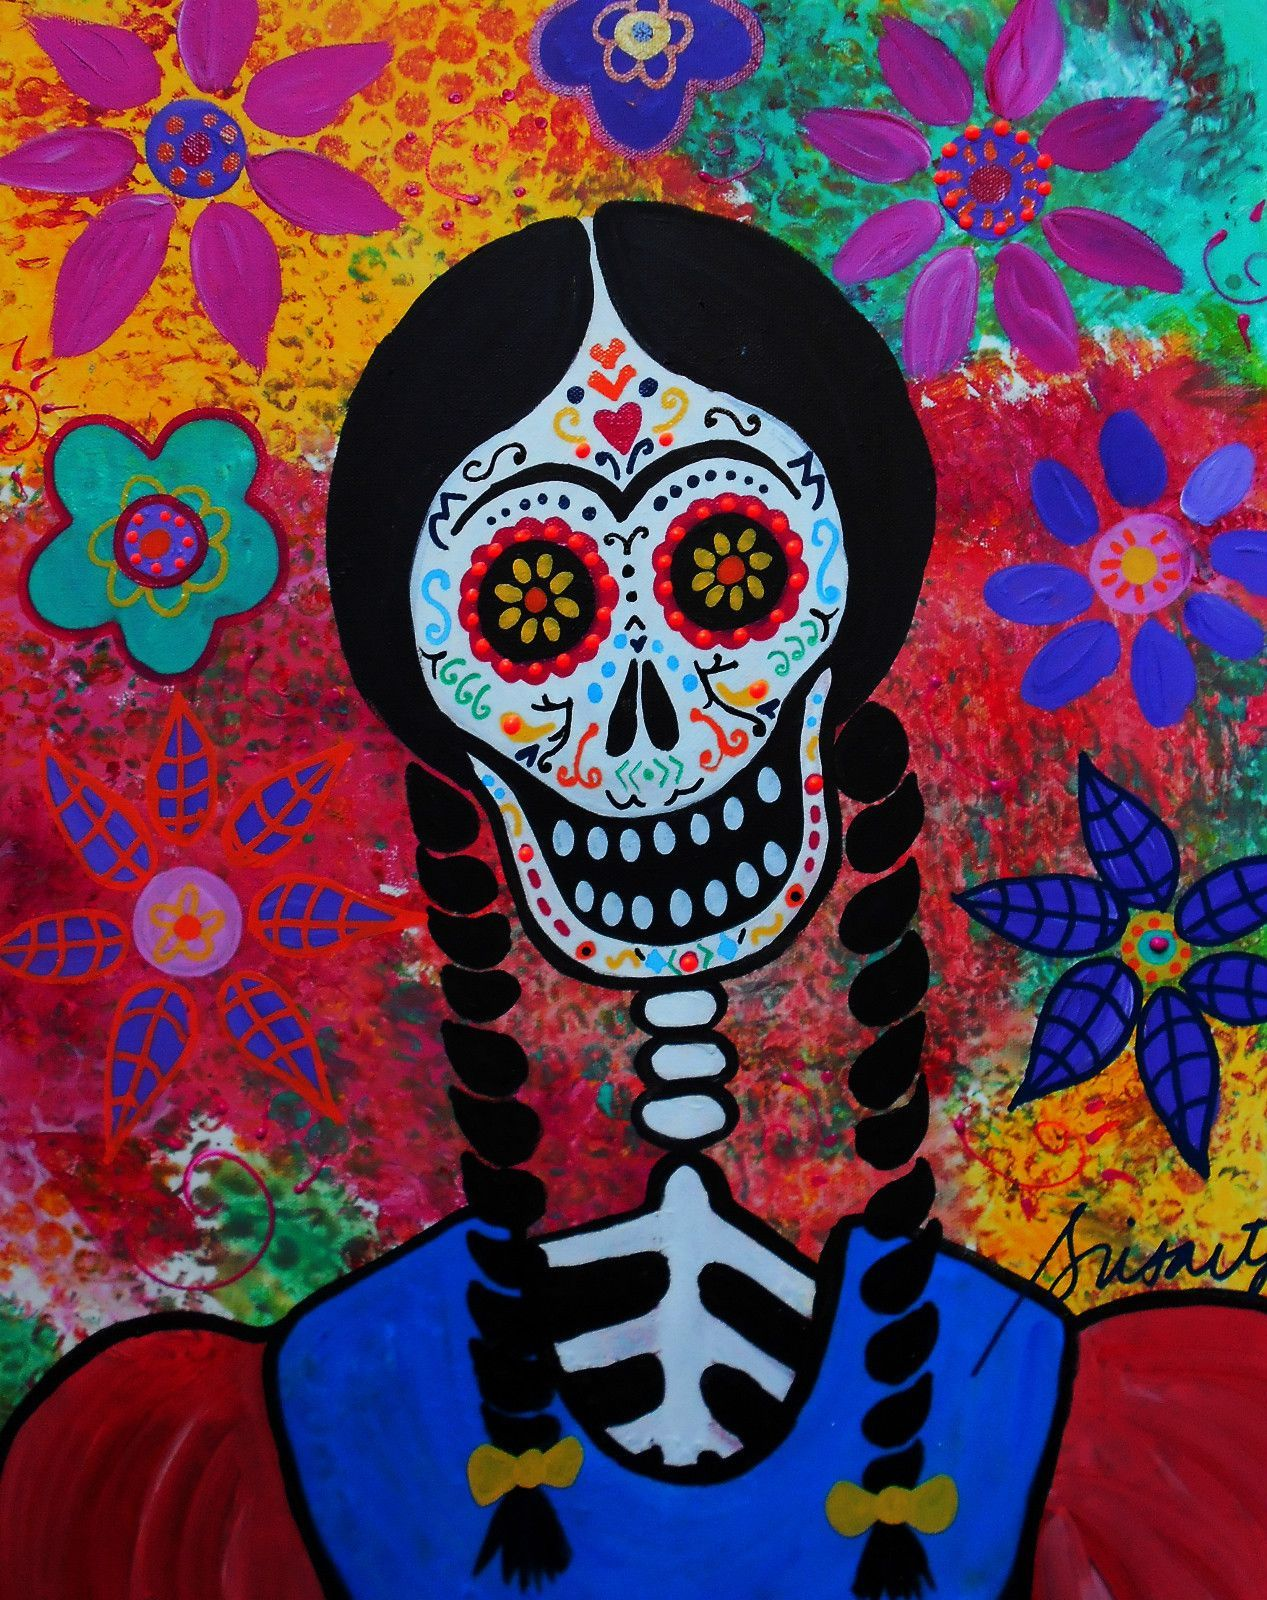 Mexican day of the dead frida kahlo flowers prisarts original folk mexican day of the dead frida kahlo flowers prisarts original folk art dailygadgetfo Images